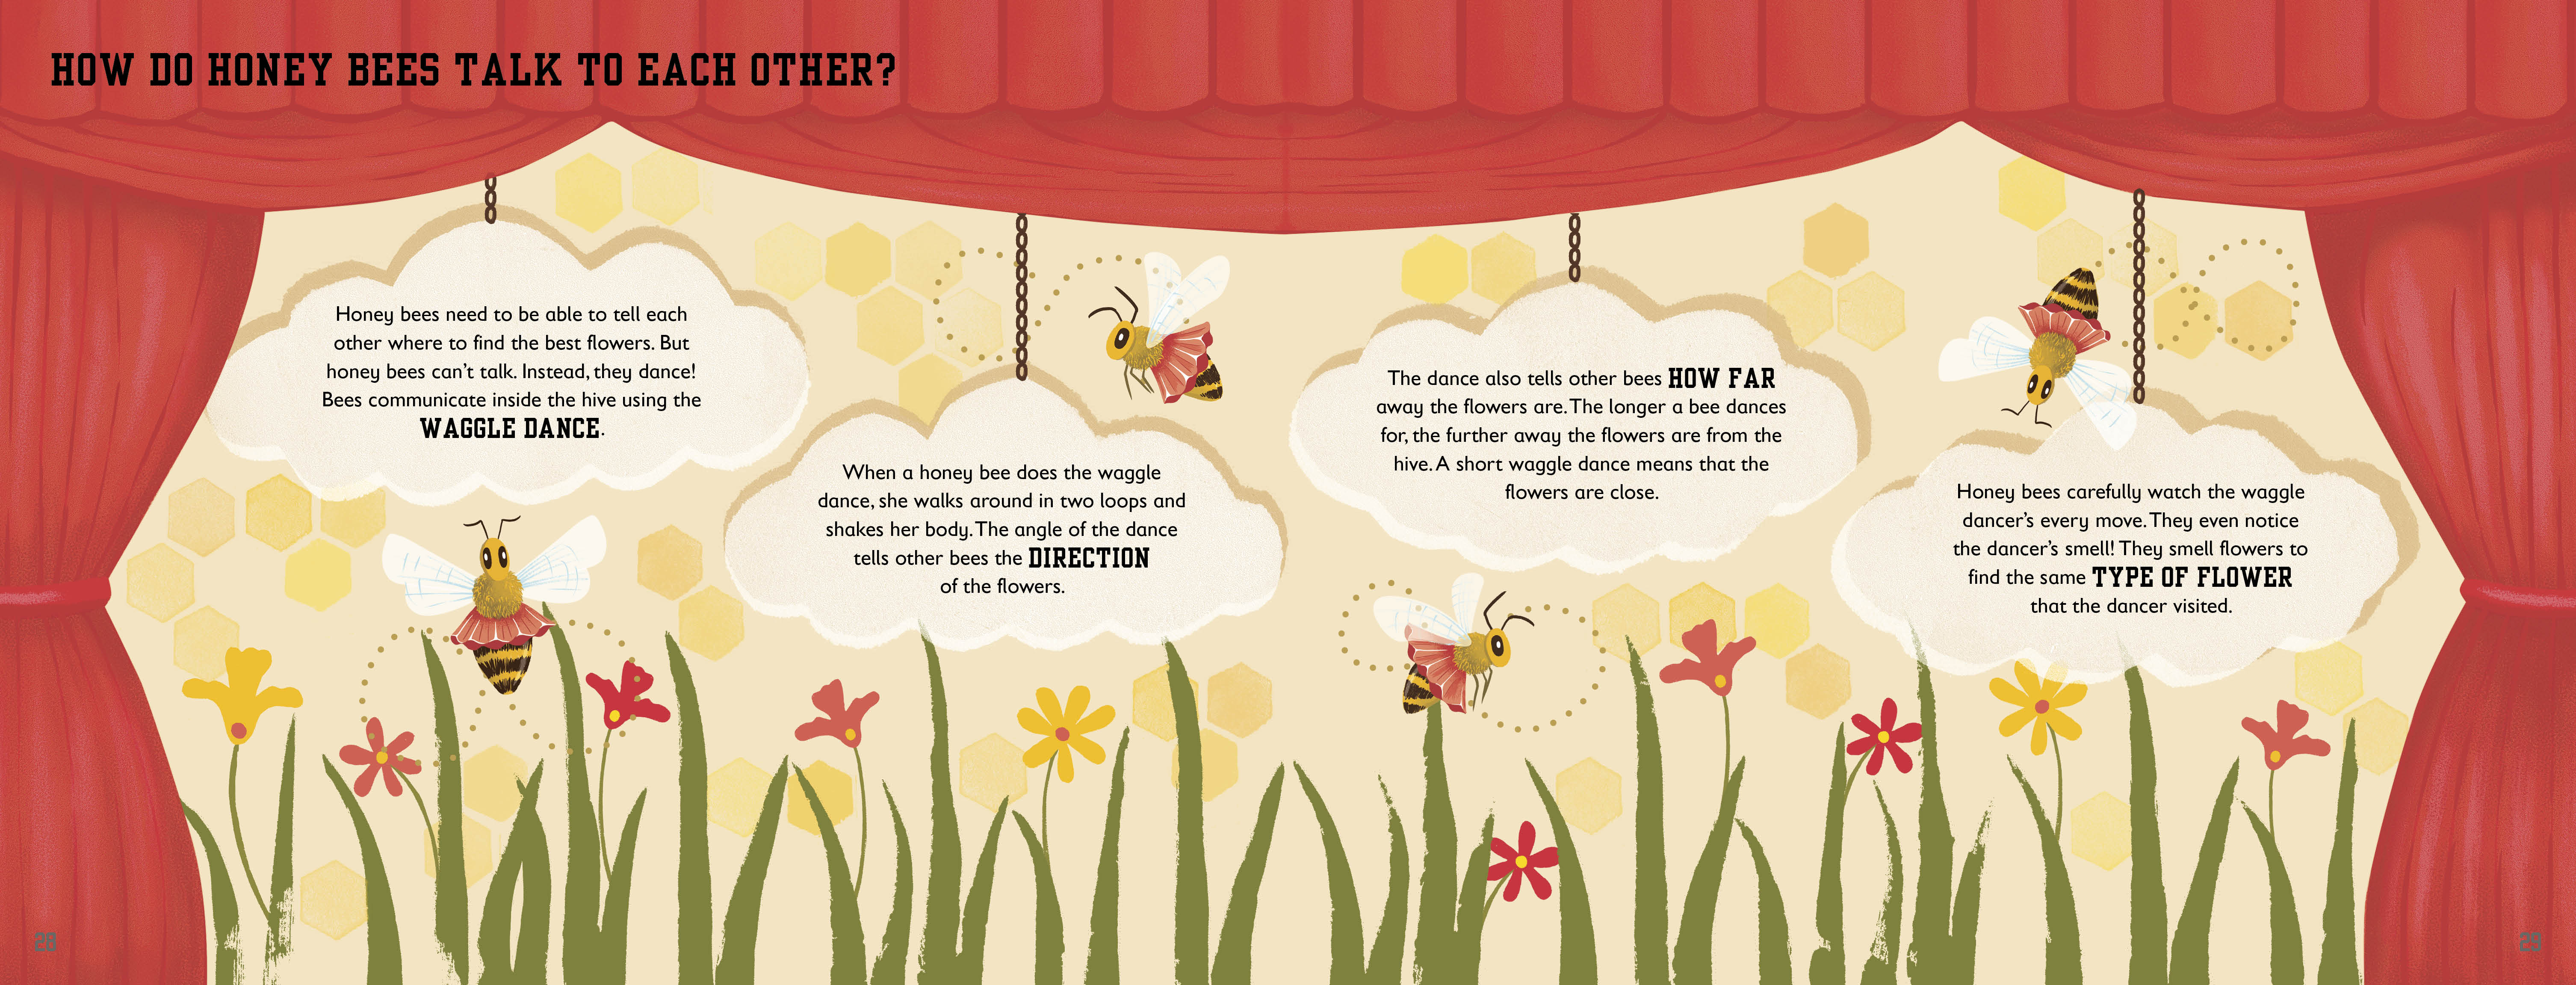 How do honey bees talk?